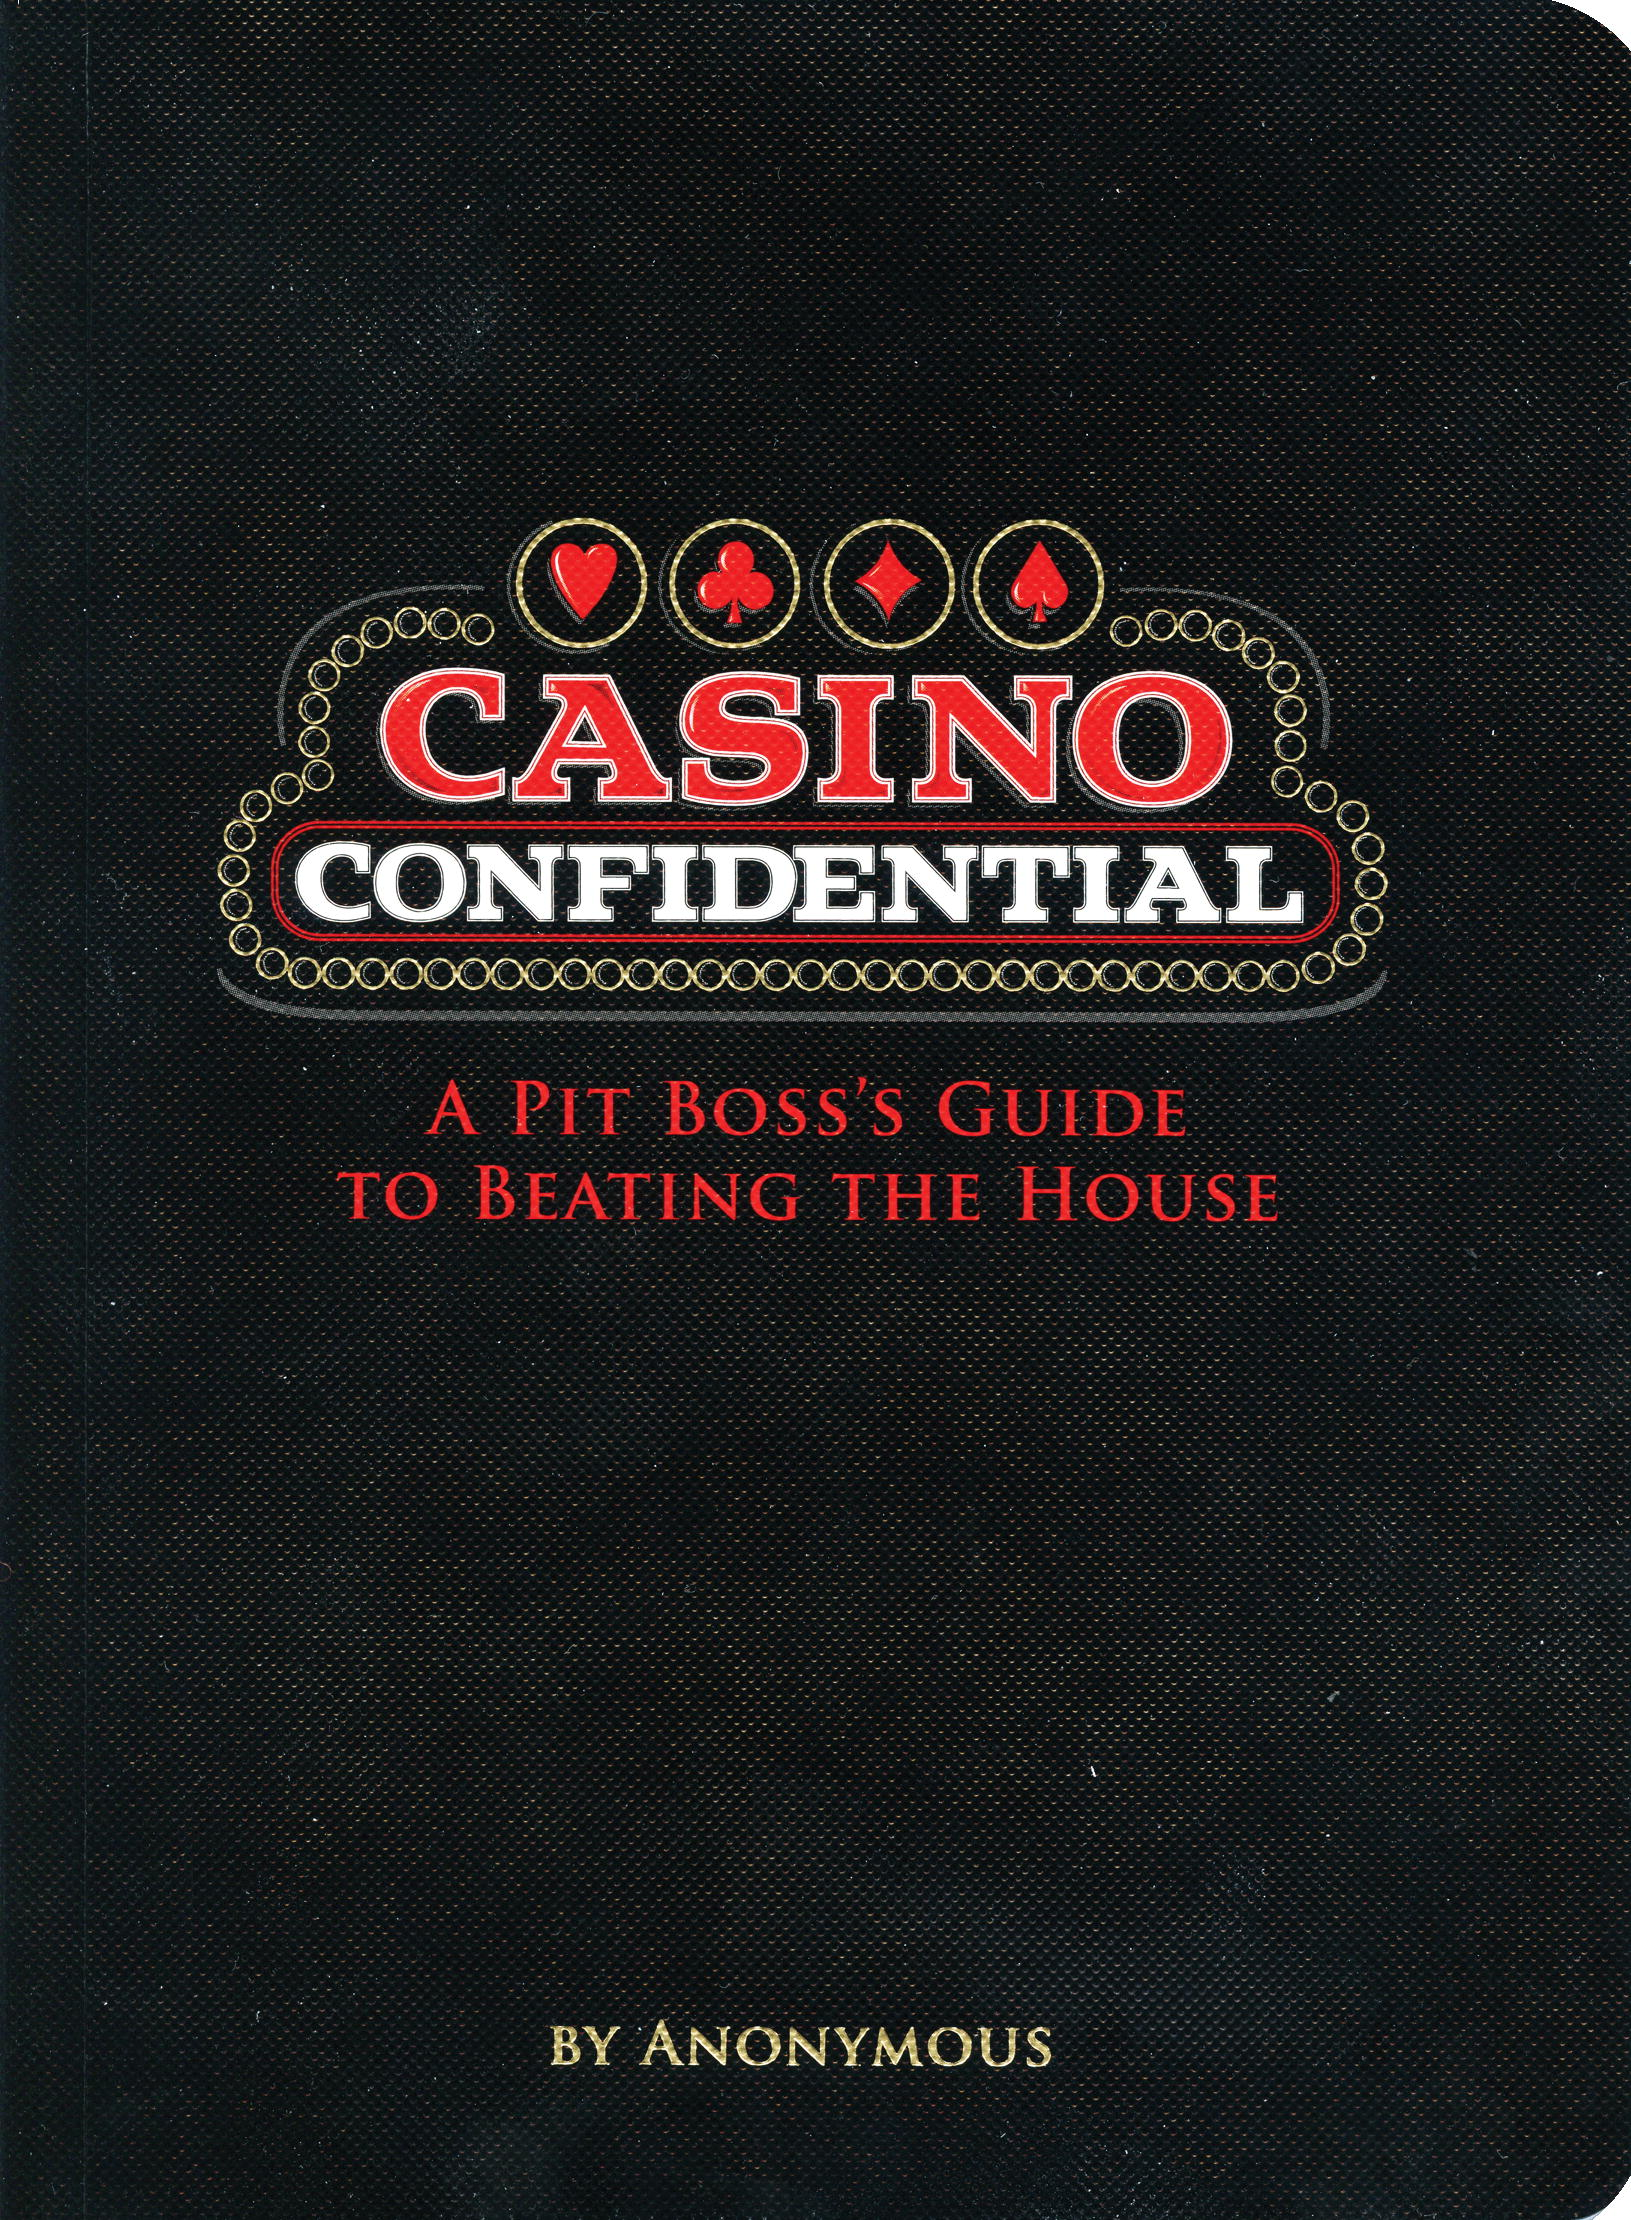 Casino confidential casino royale book pdf free